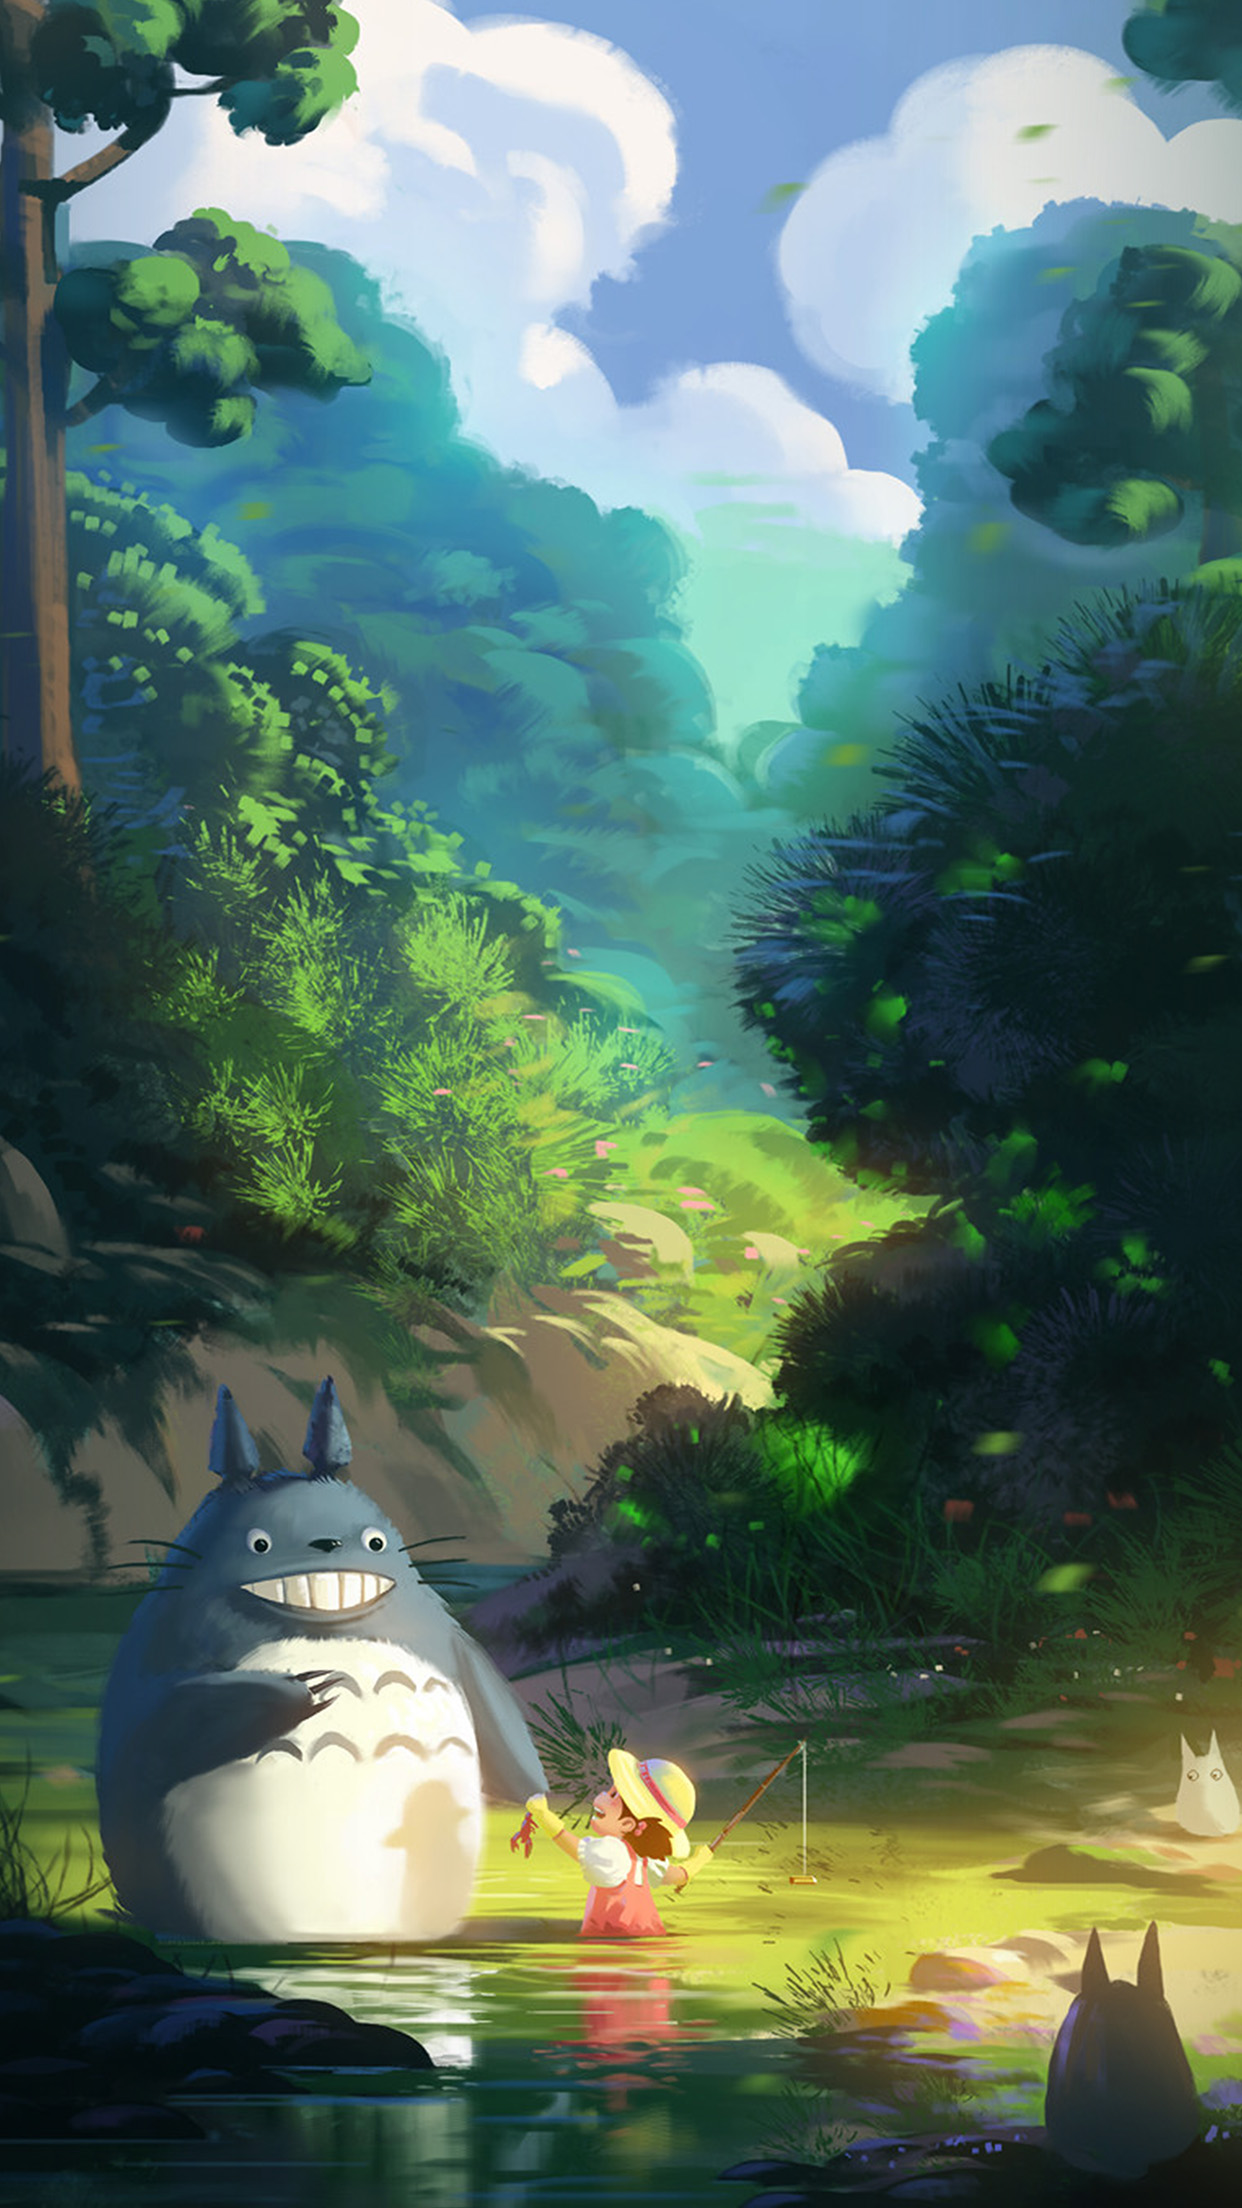 totoro anime liang xing illustration art android wallpaper - android